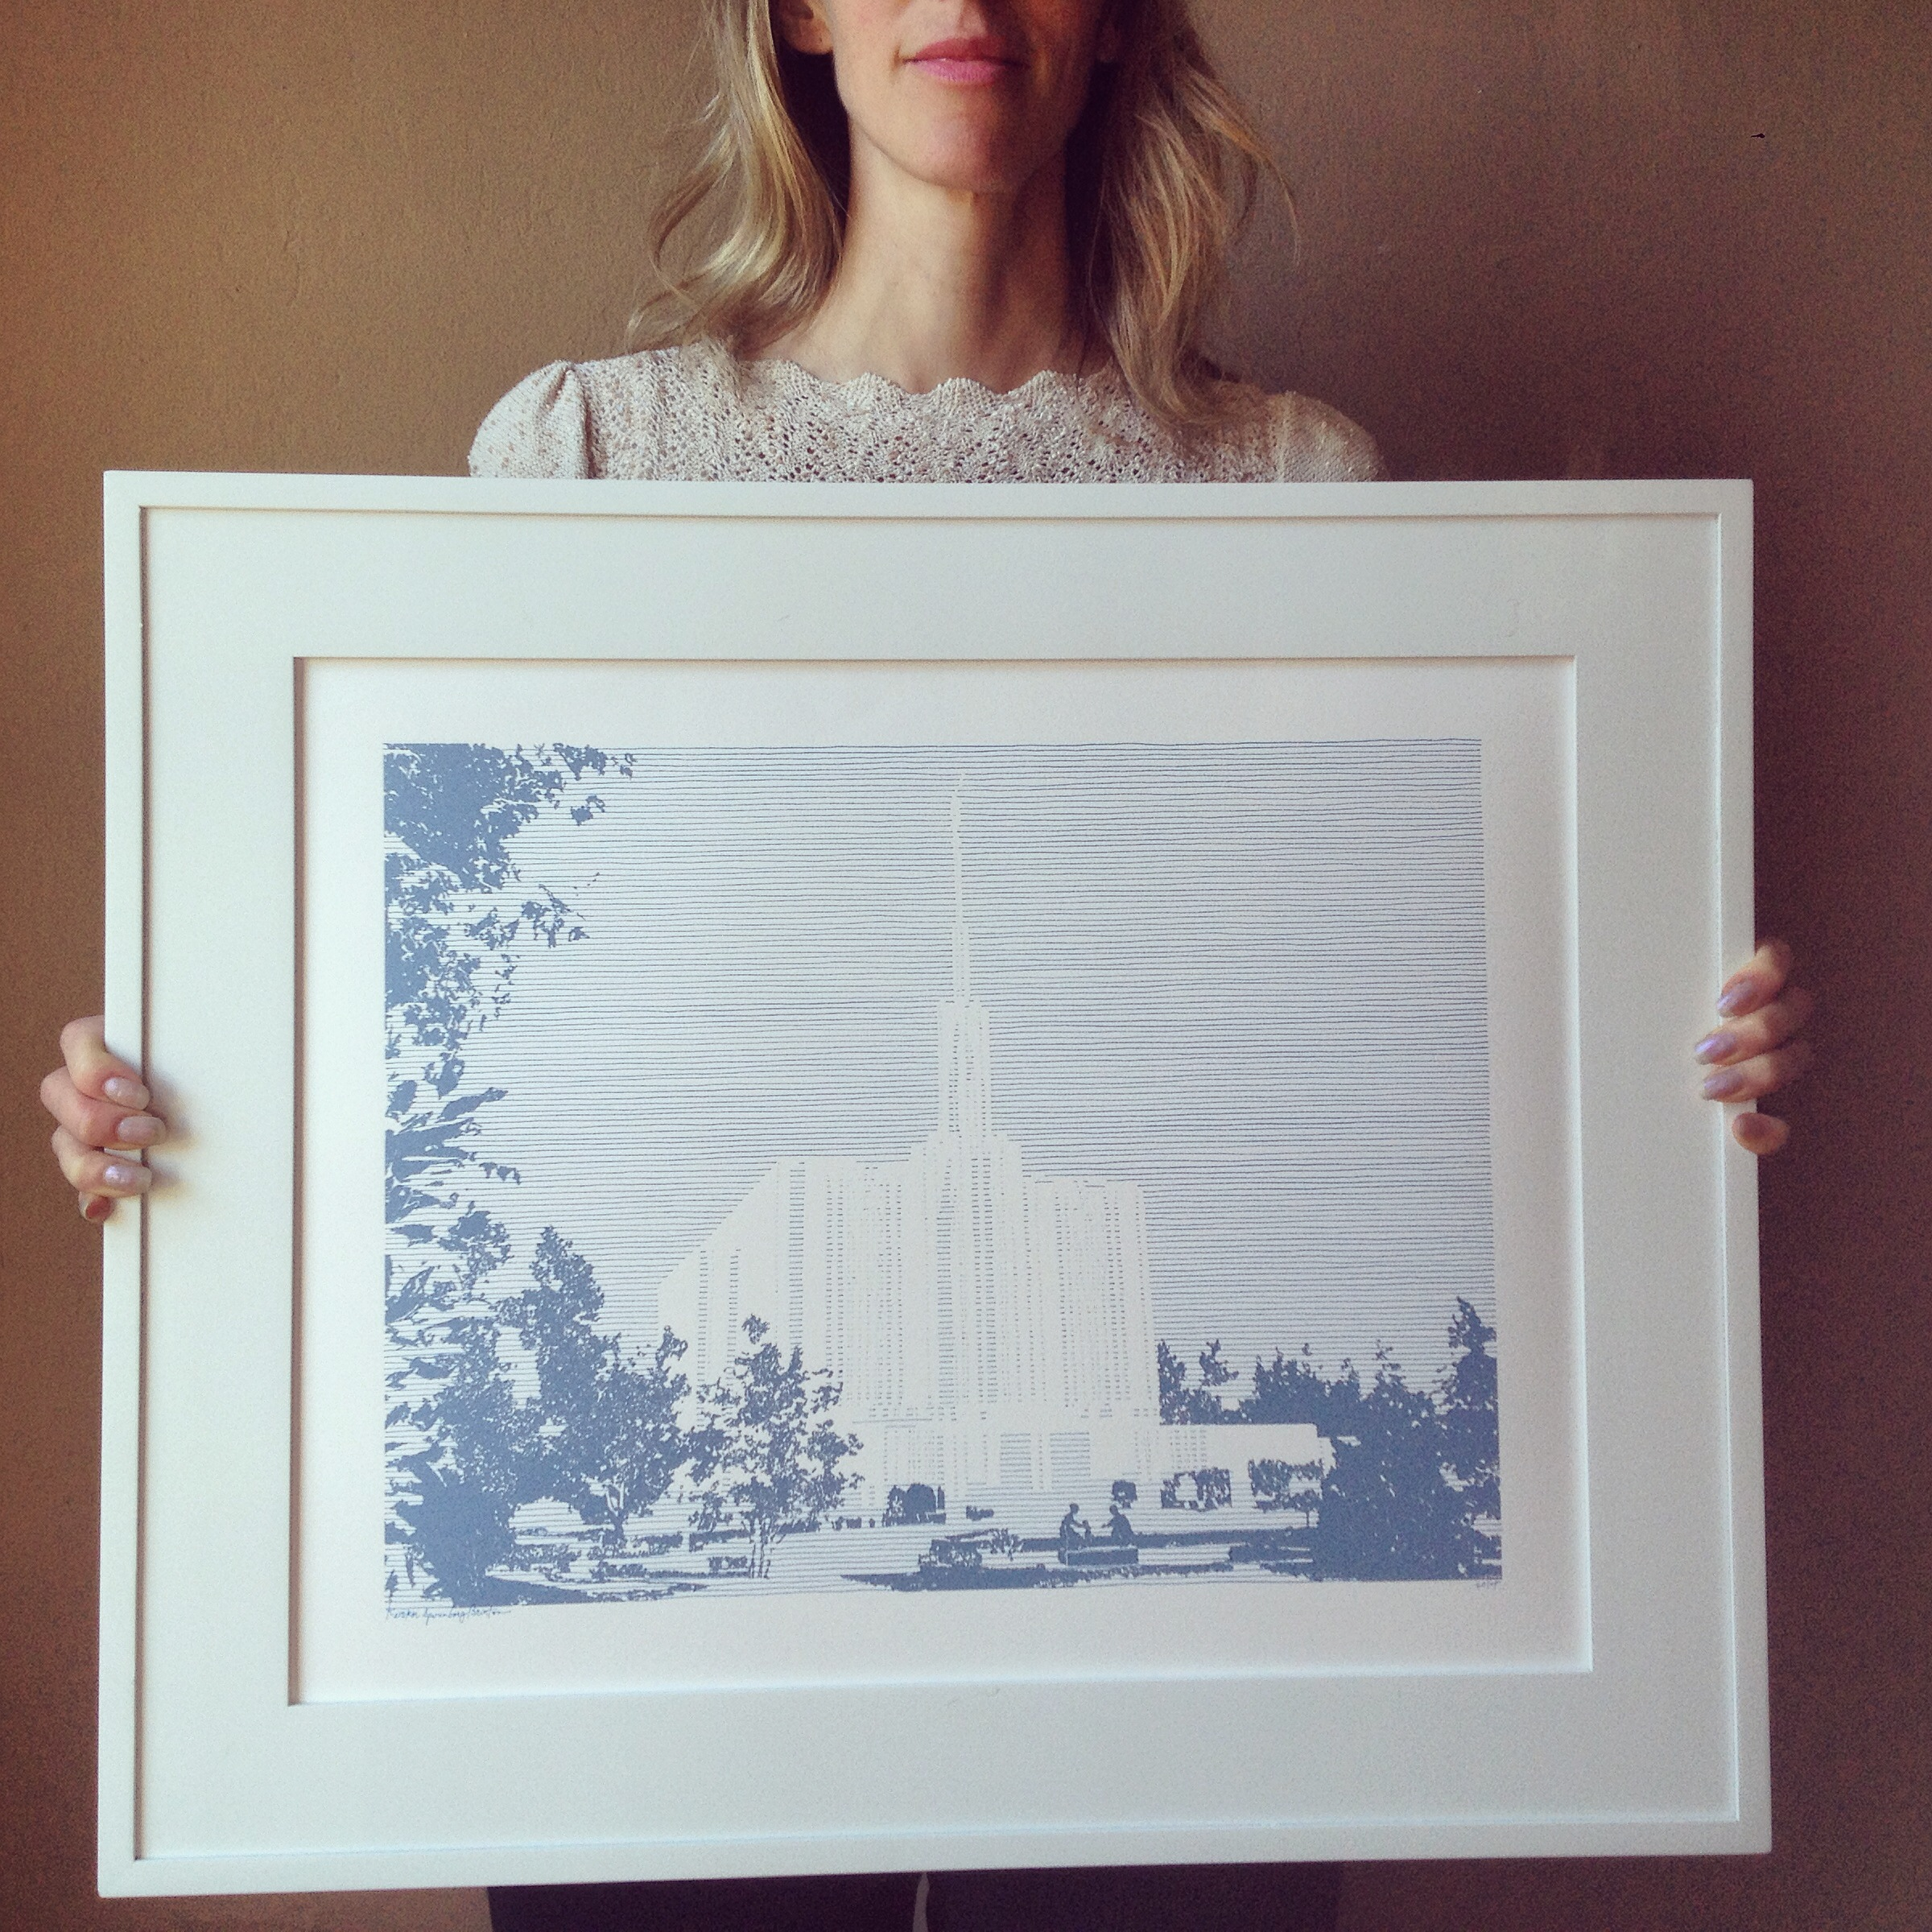 TOTC_K Sparenborg Brinton_Seattle LDS Temple_Original Drawing_TurnoftheCenturies